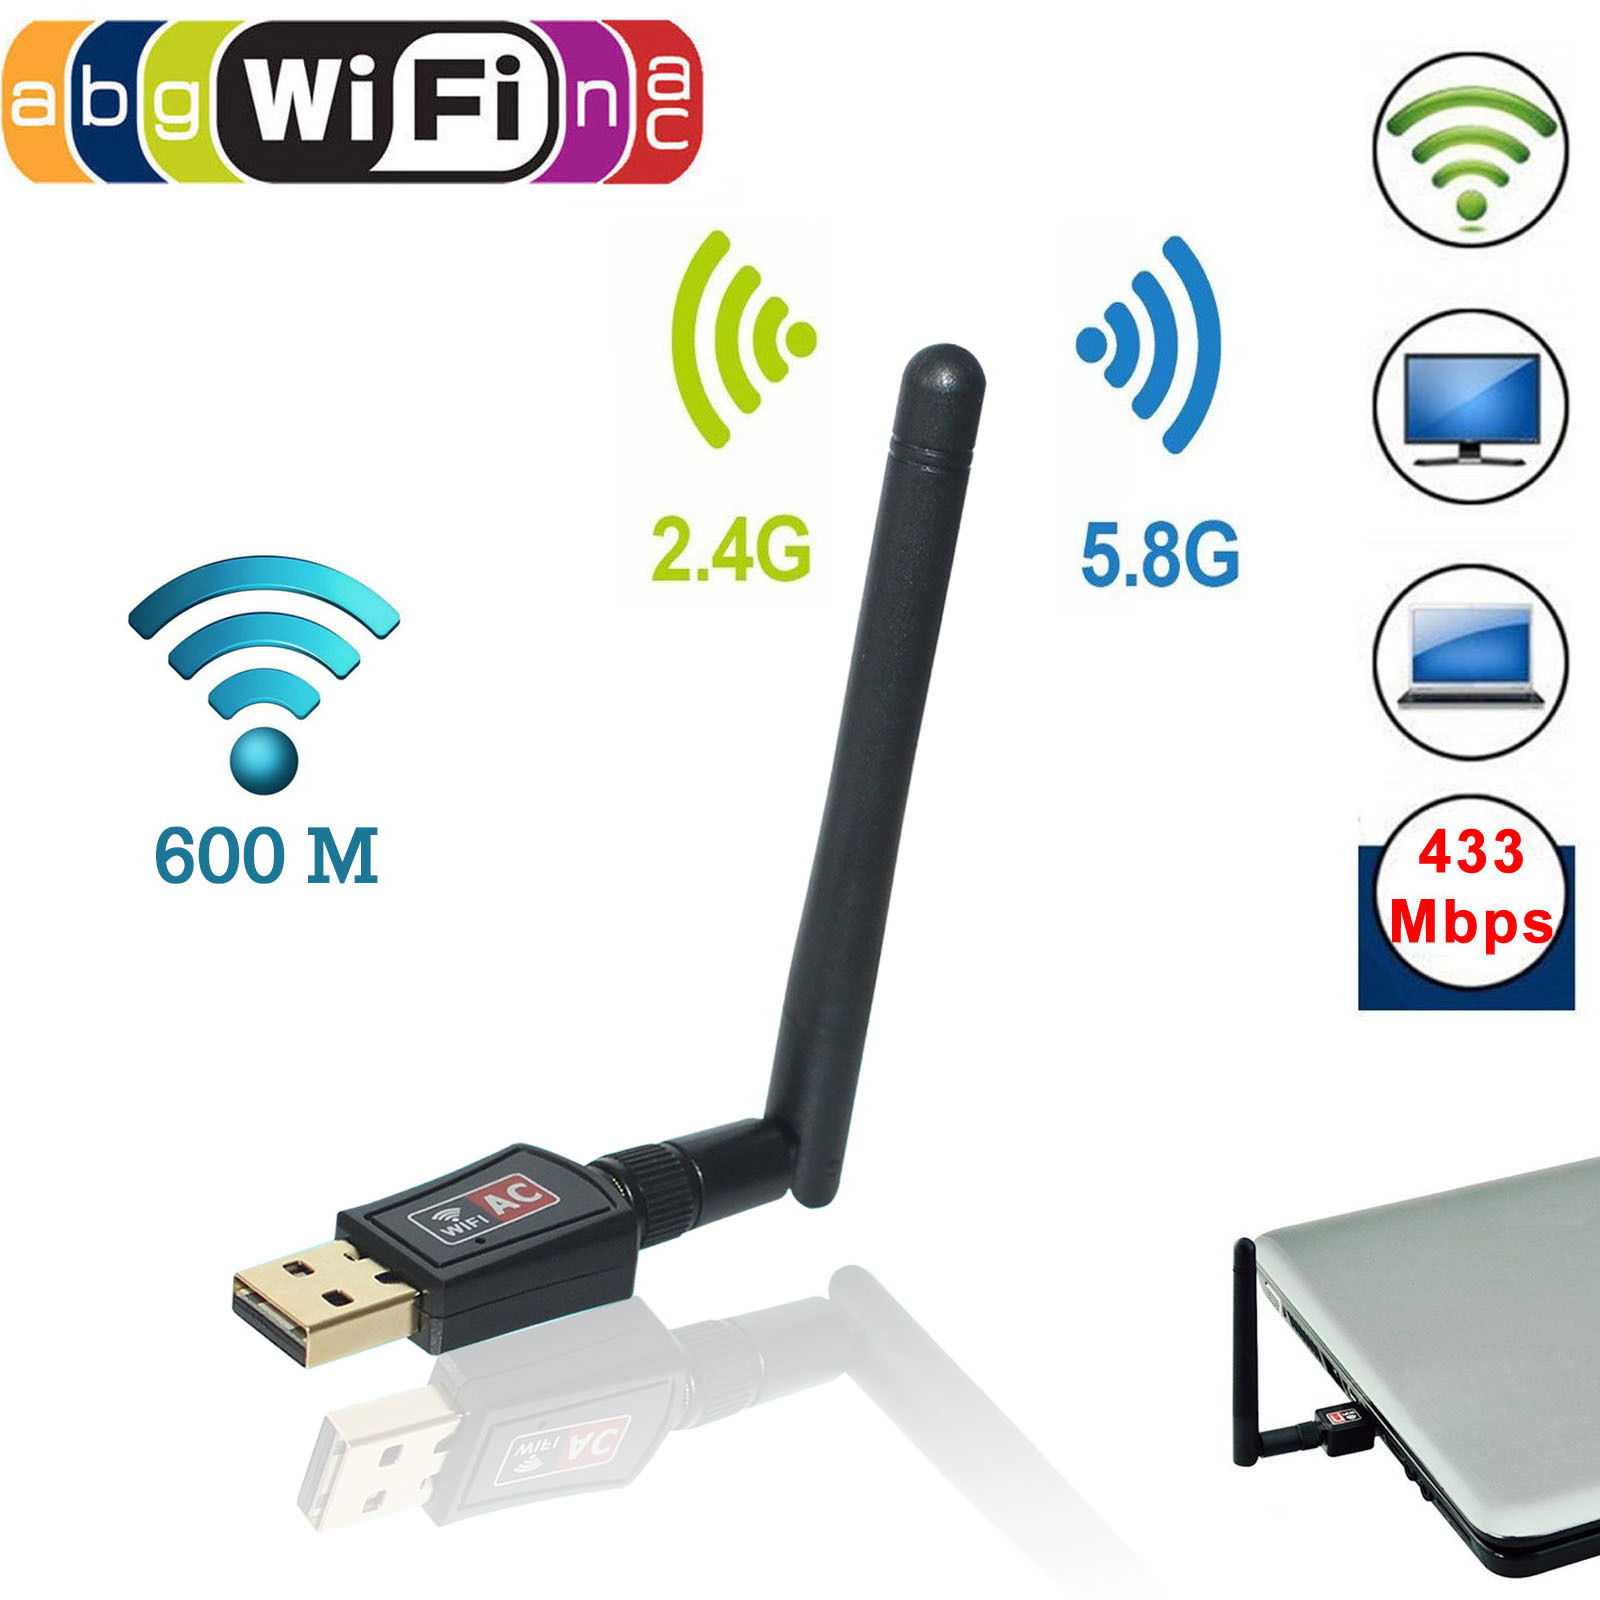 EEEKit 5GHz 433Mbps/2.4GHz 150Mbps Mini Wireless Dual Band WIFI USB Adapter w/ Antenna Network Dongle for PC Laptop